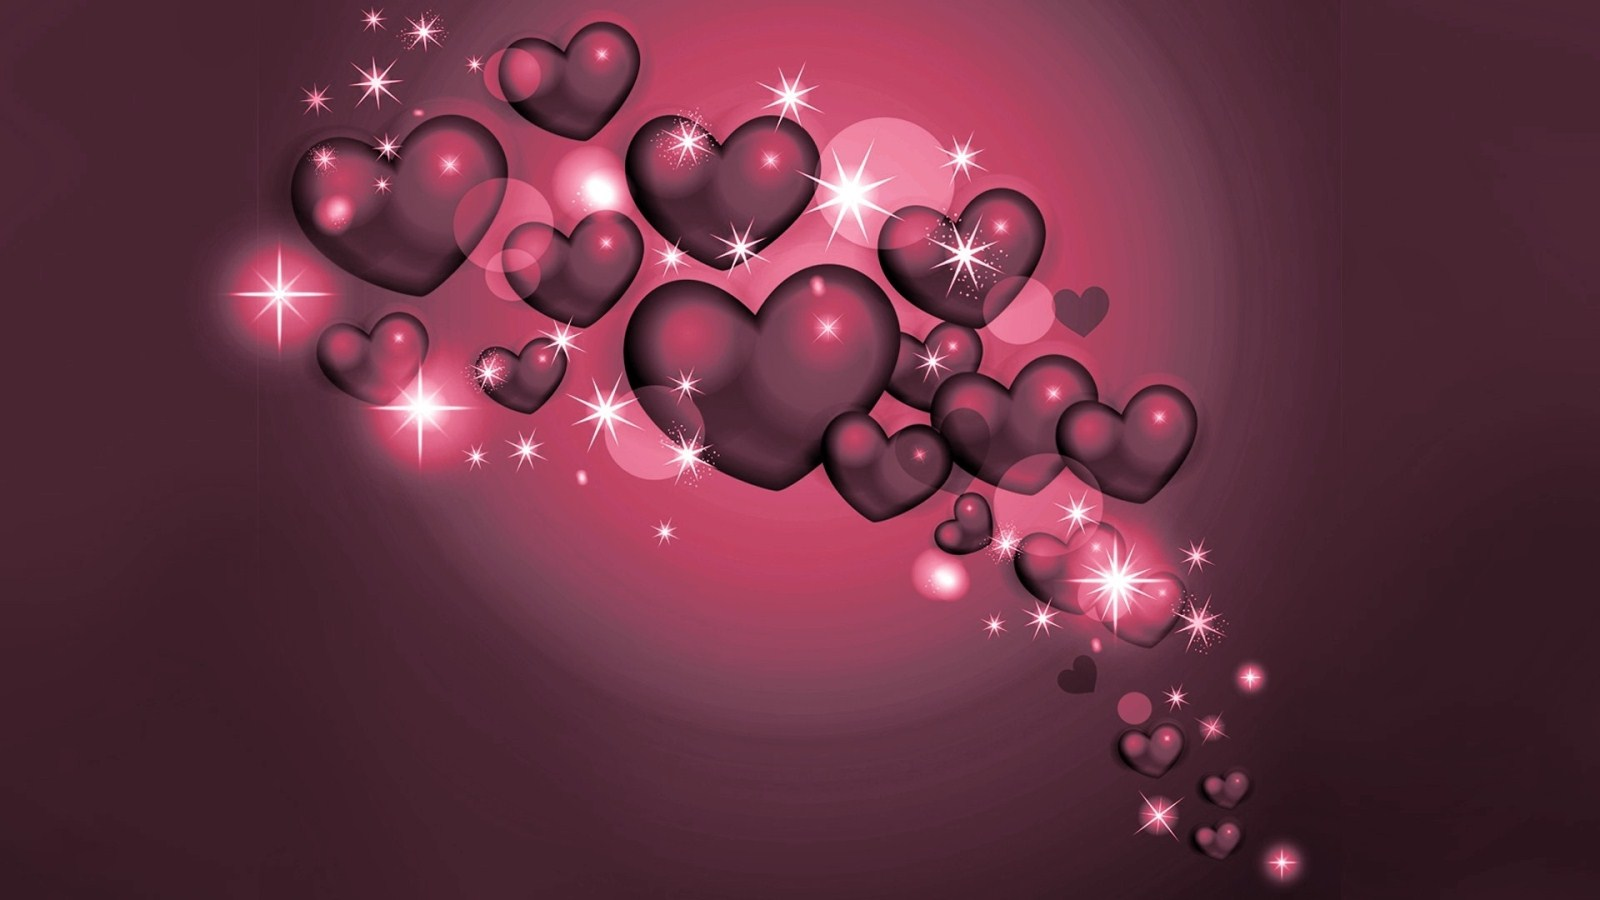 3D Love Wallpaper - WallpaperSafari